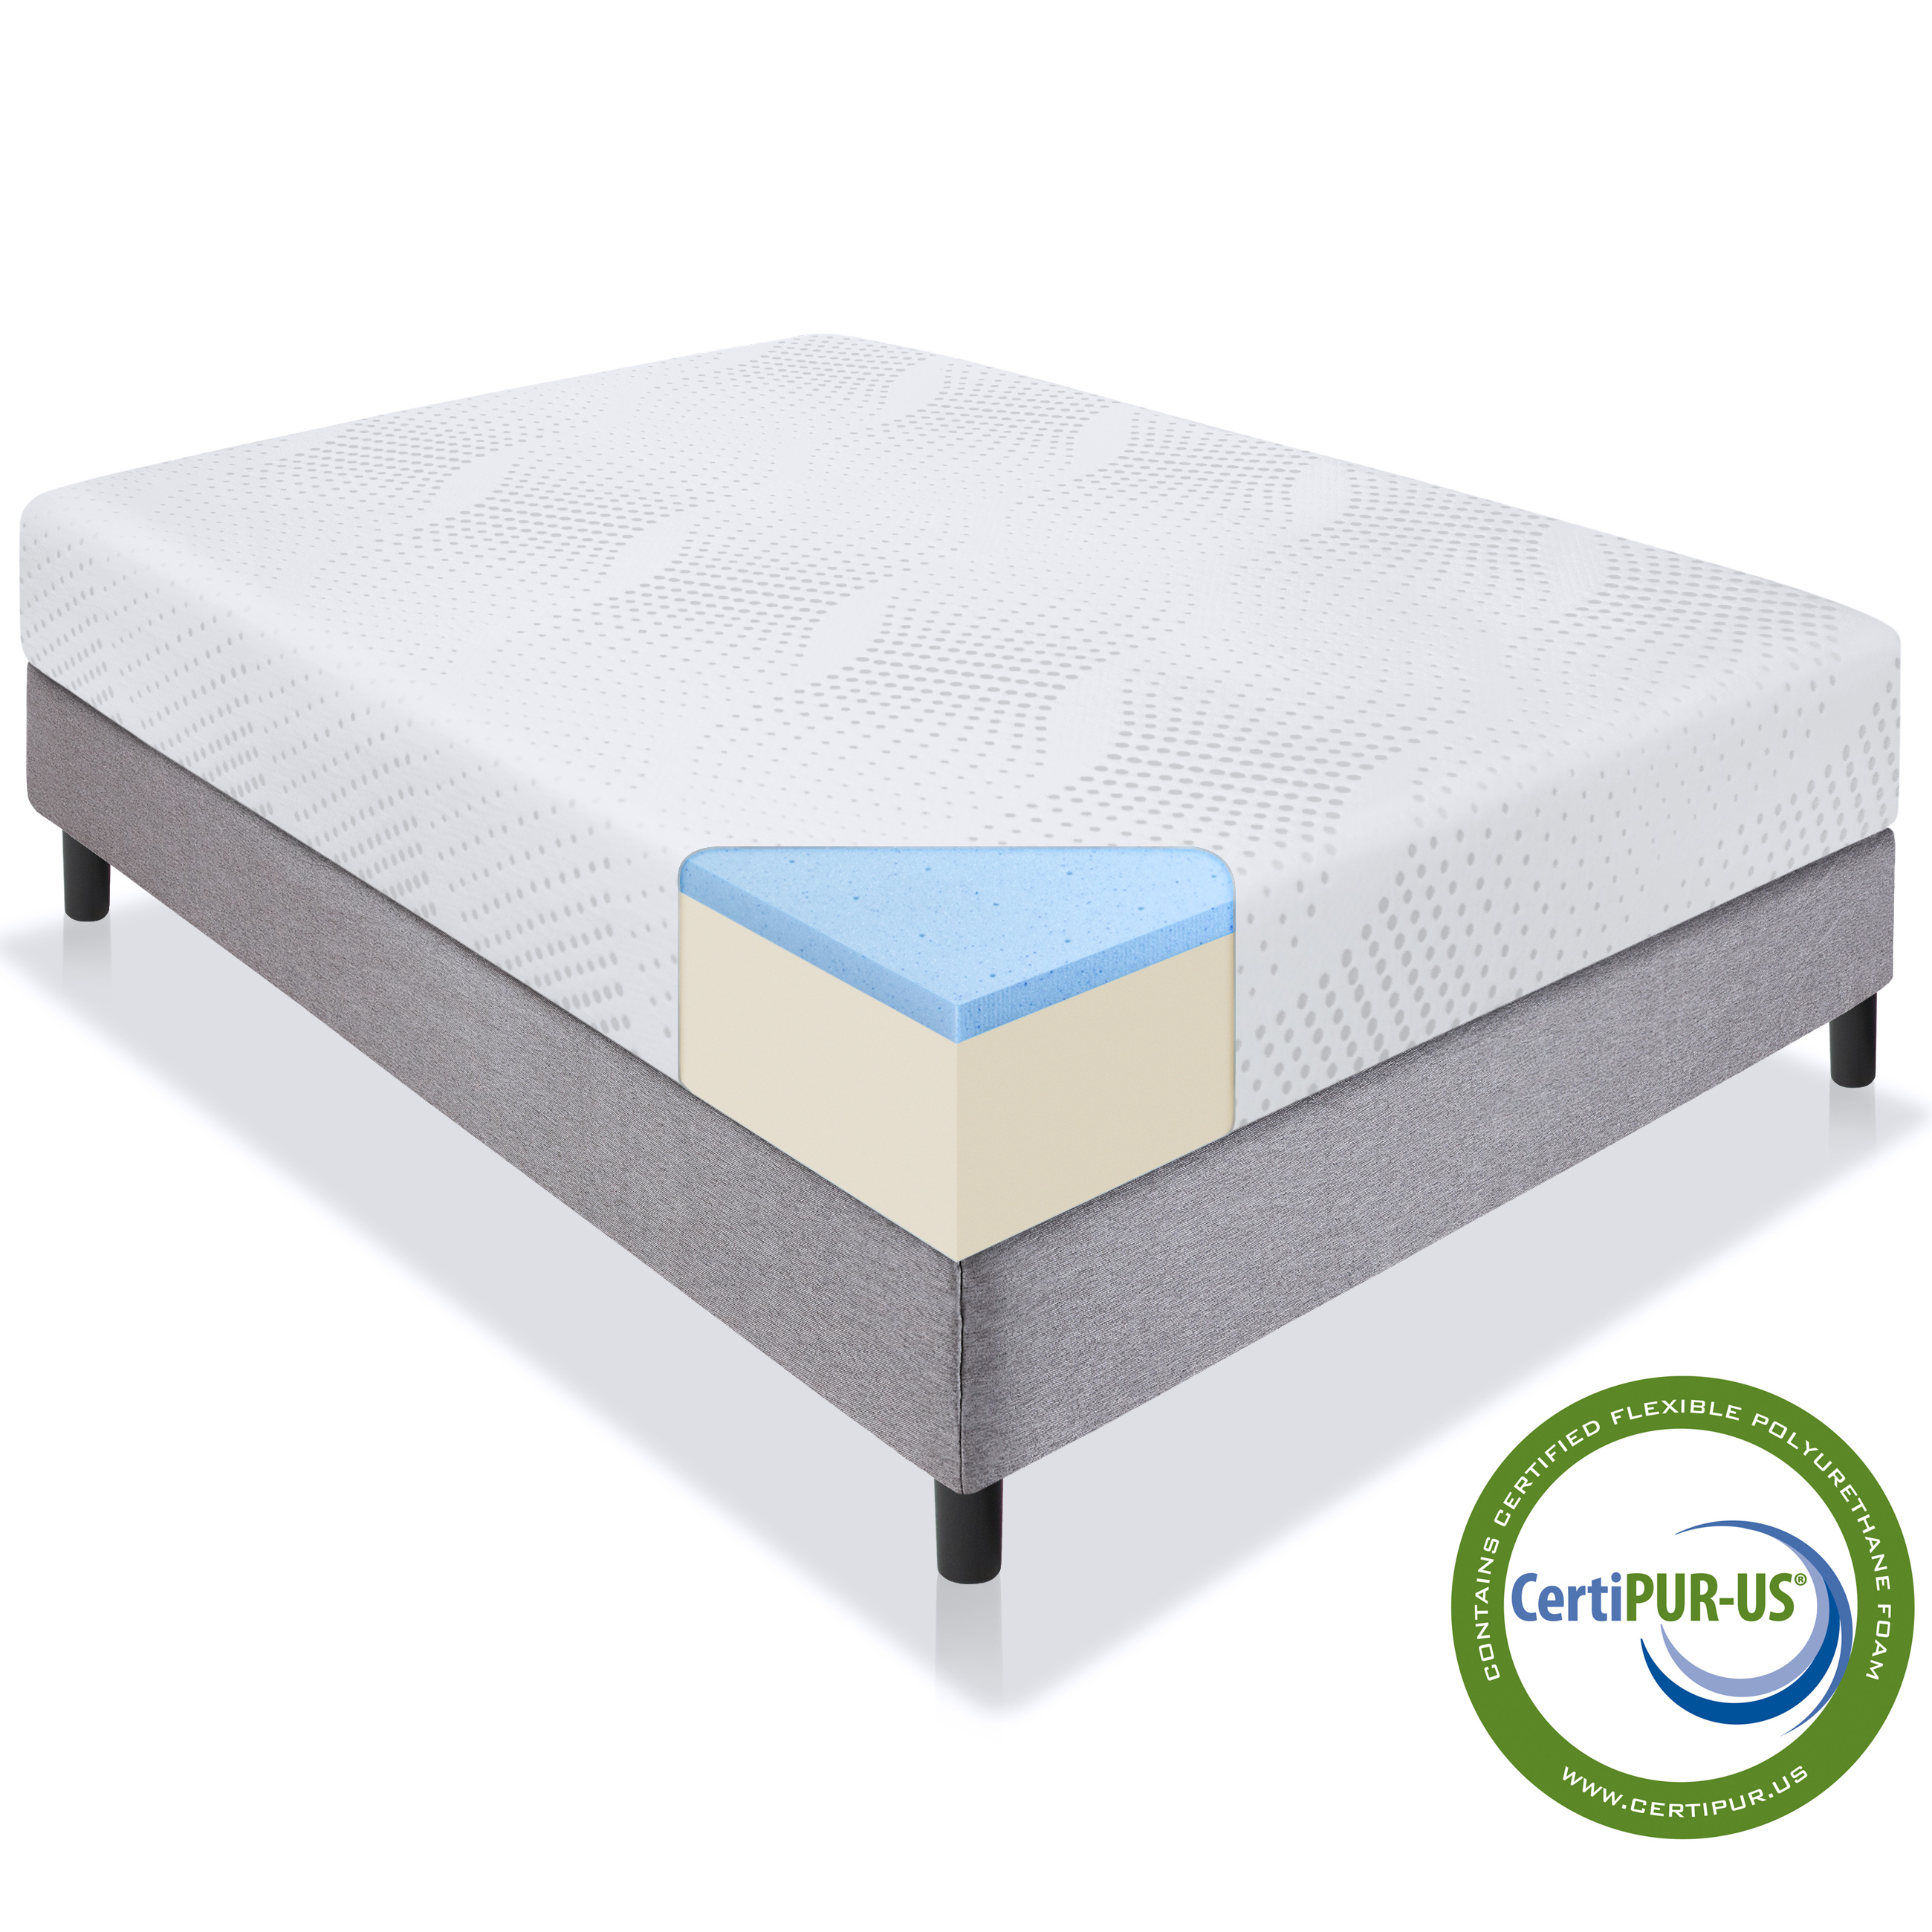 Best Choice Products 10in Queen Size Dual Layered Gel Memory Foam Mattress w  CertiPUR-US... by Best Choice Products